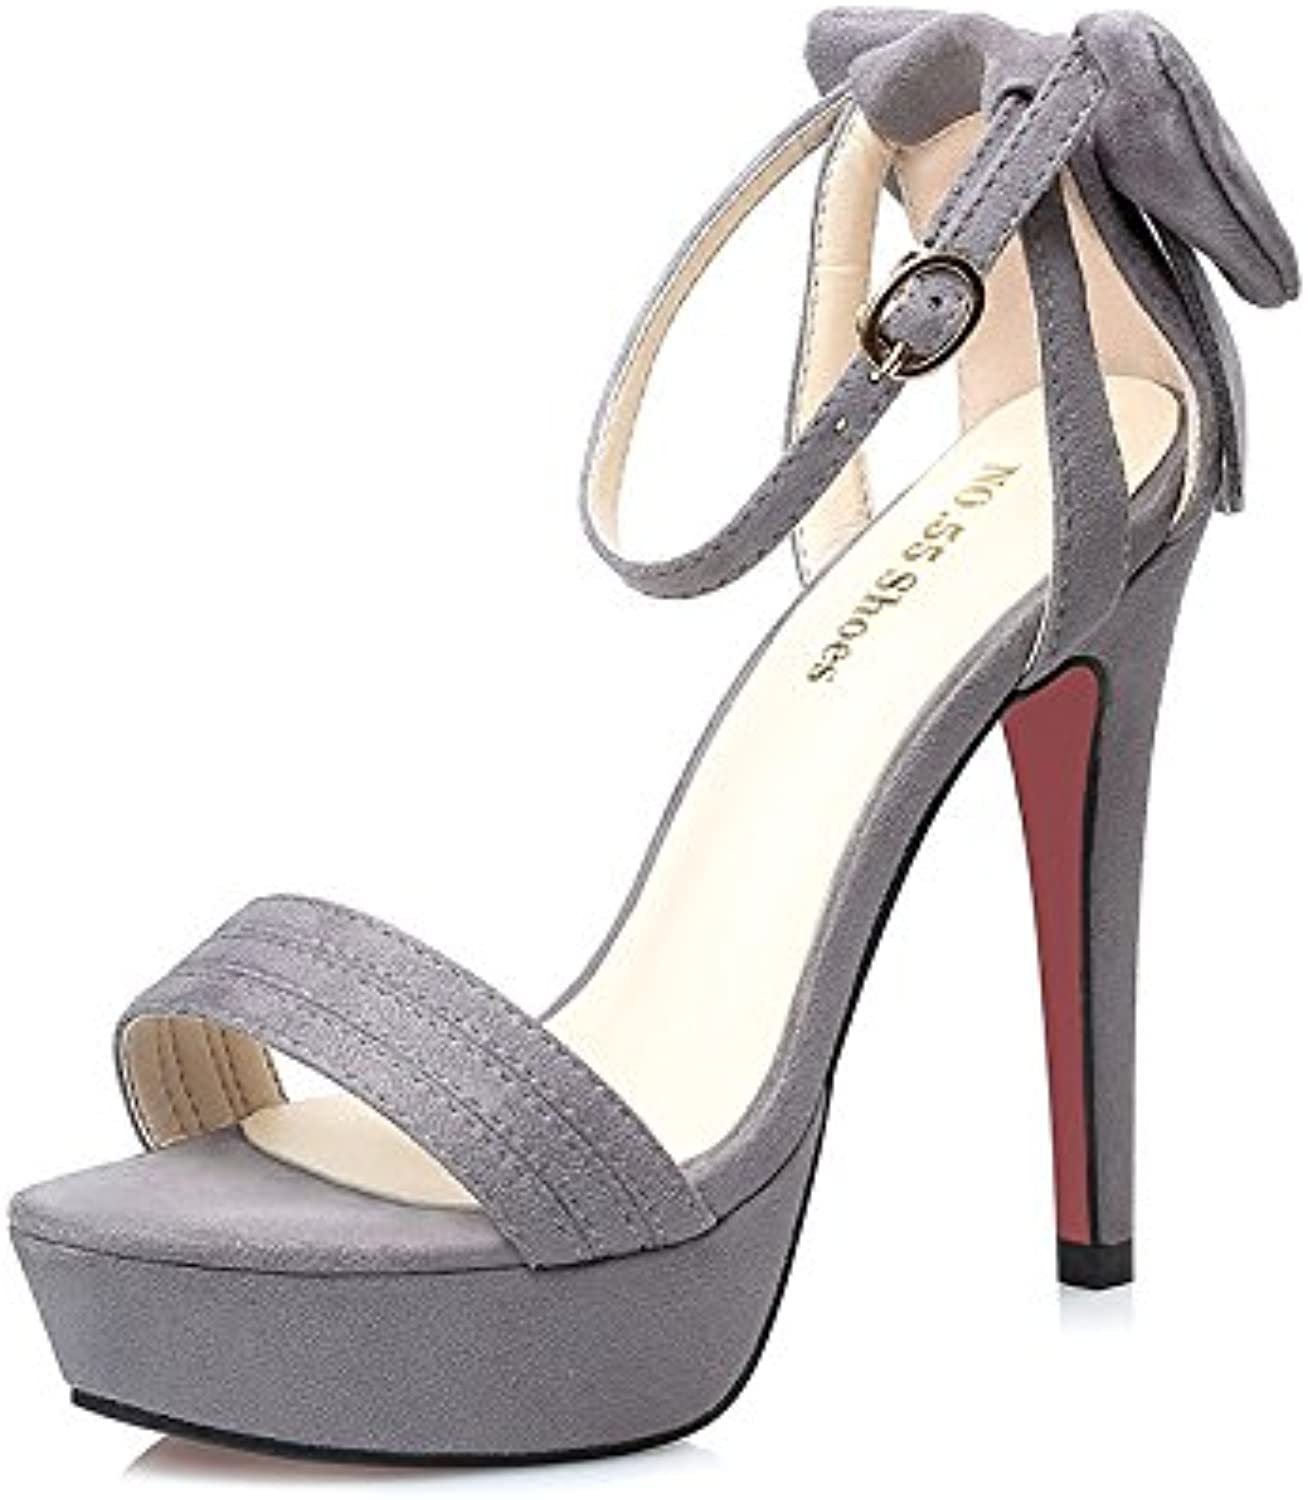 Chaussure Chaussure Chaussure shaoge sweet nœud papillon